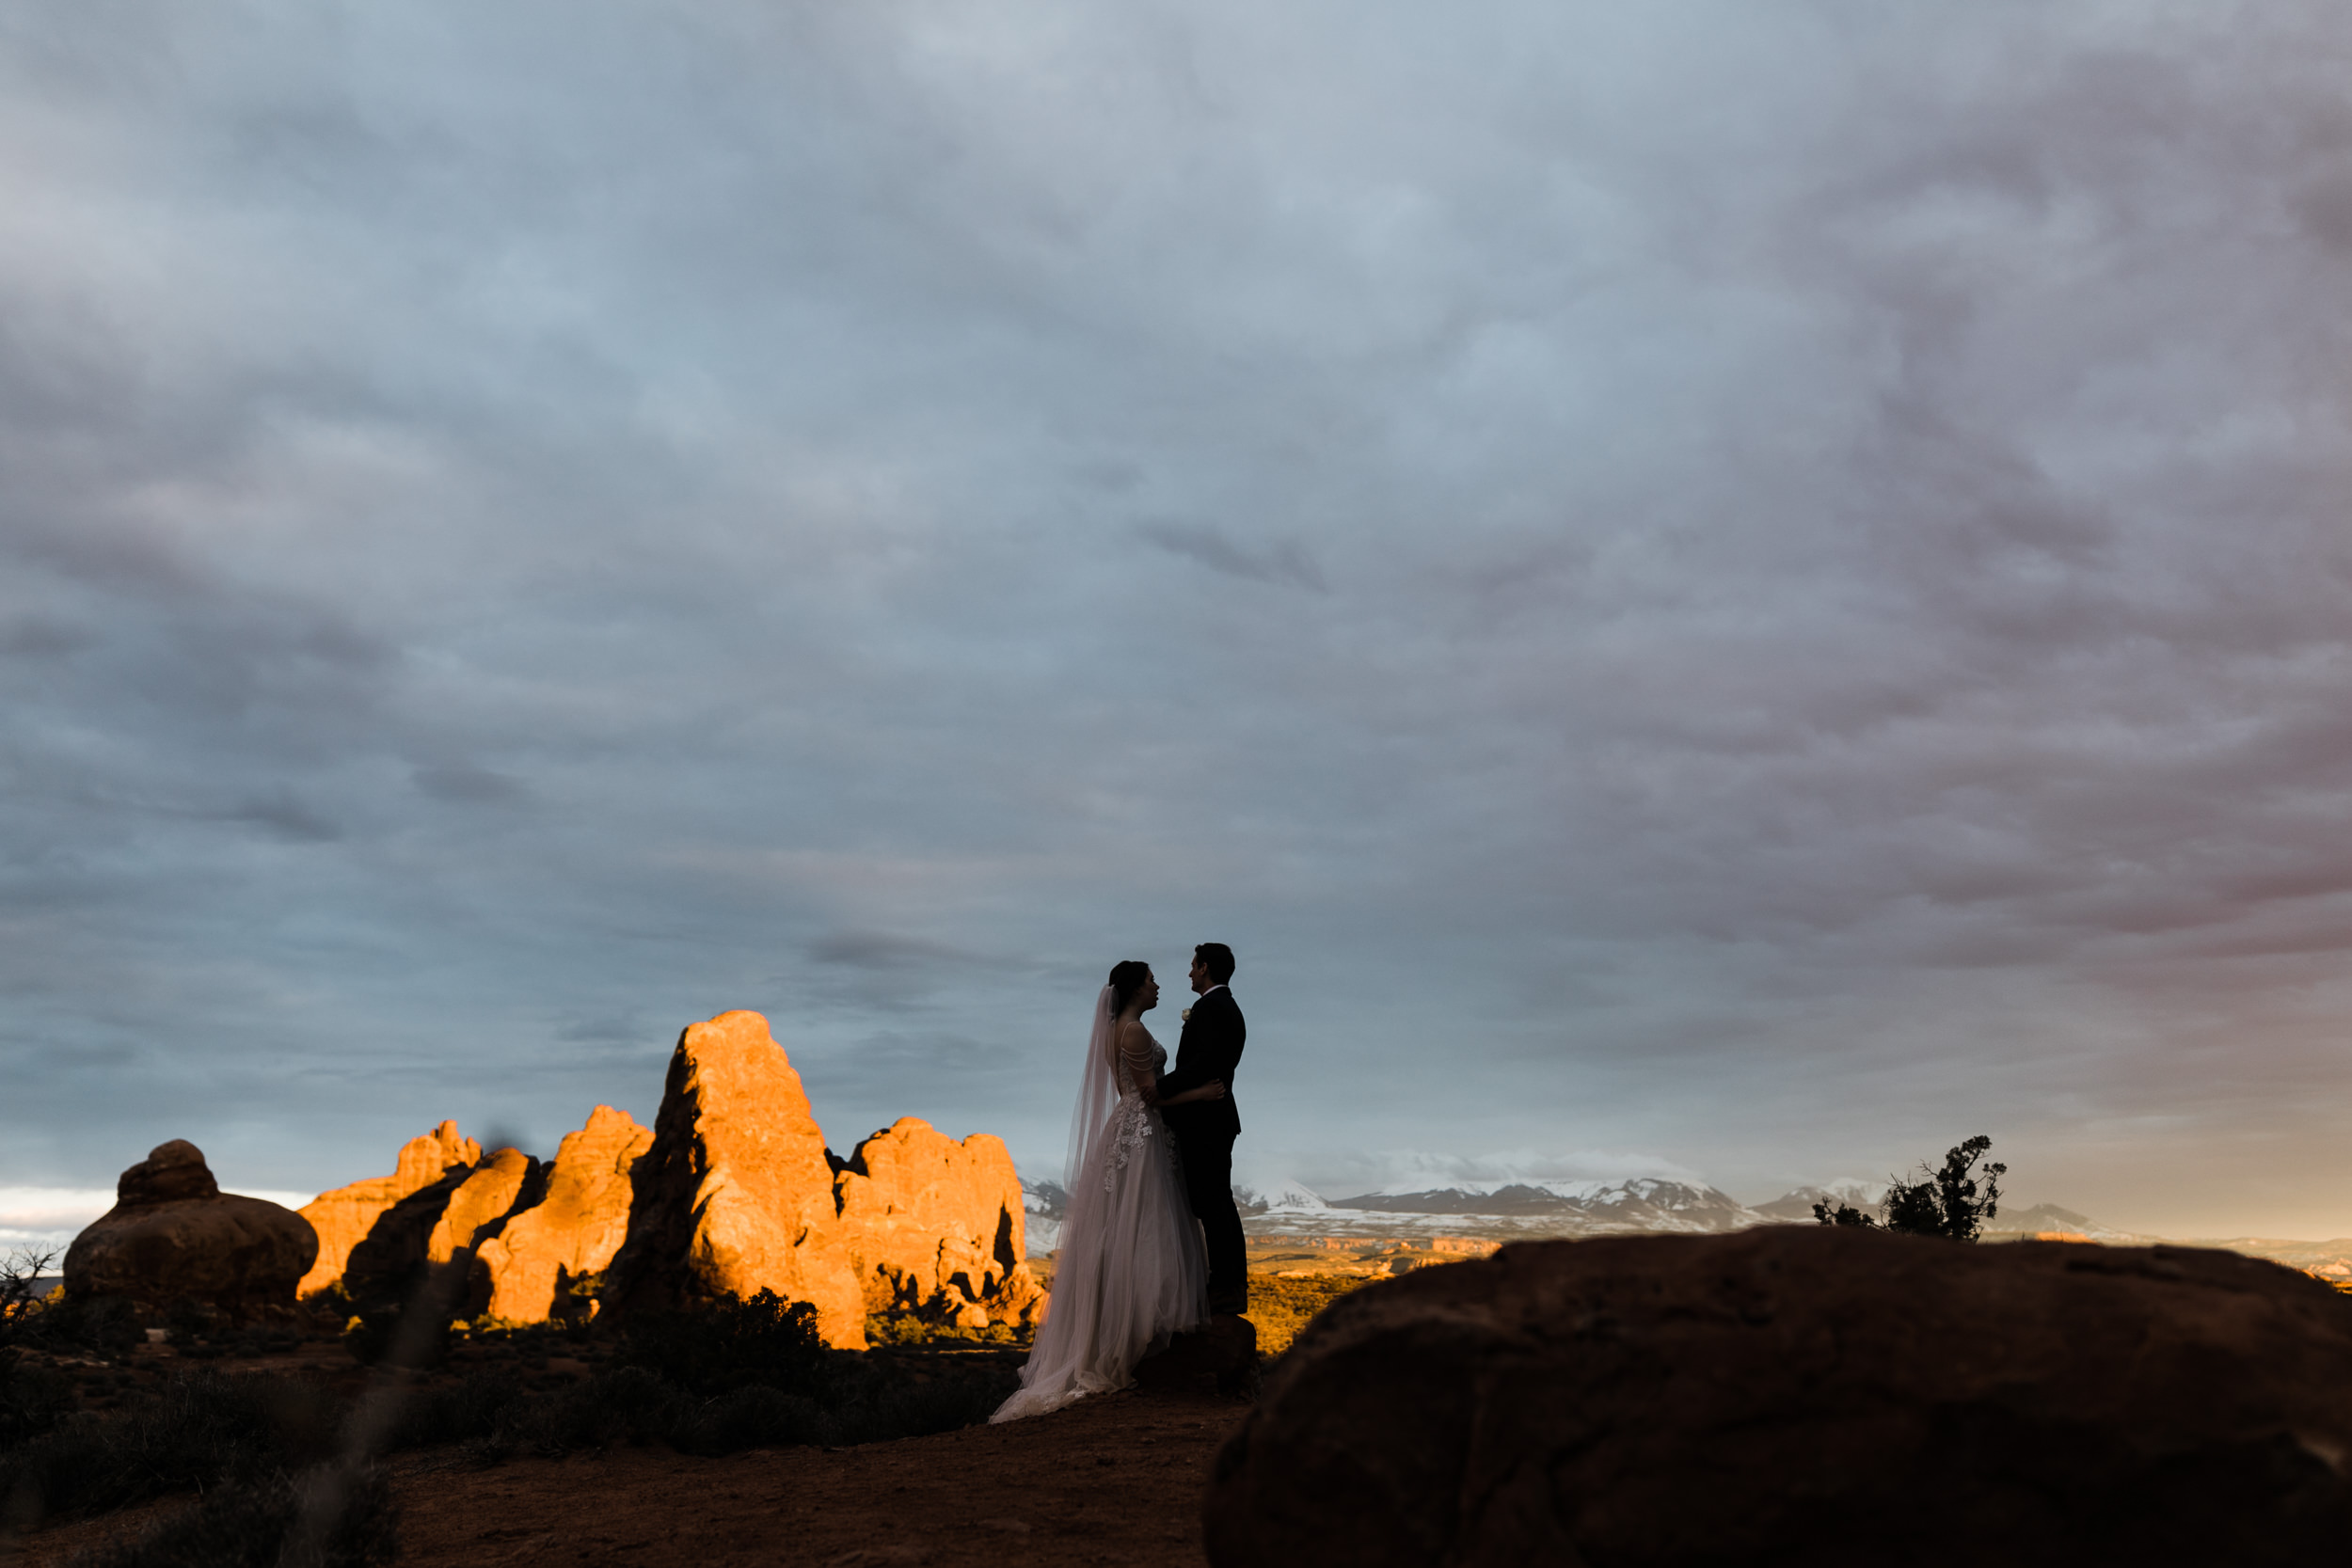 There's still amazing photos to be had after the sun has set in Arches National Park. The light stretches on to the last of the rocks lit up and beyond to the Lasalle Mountains.